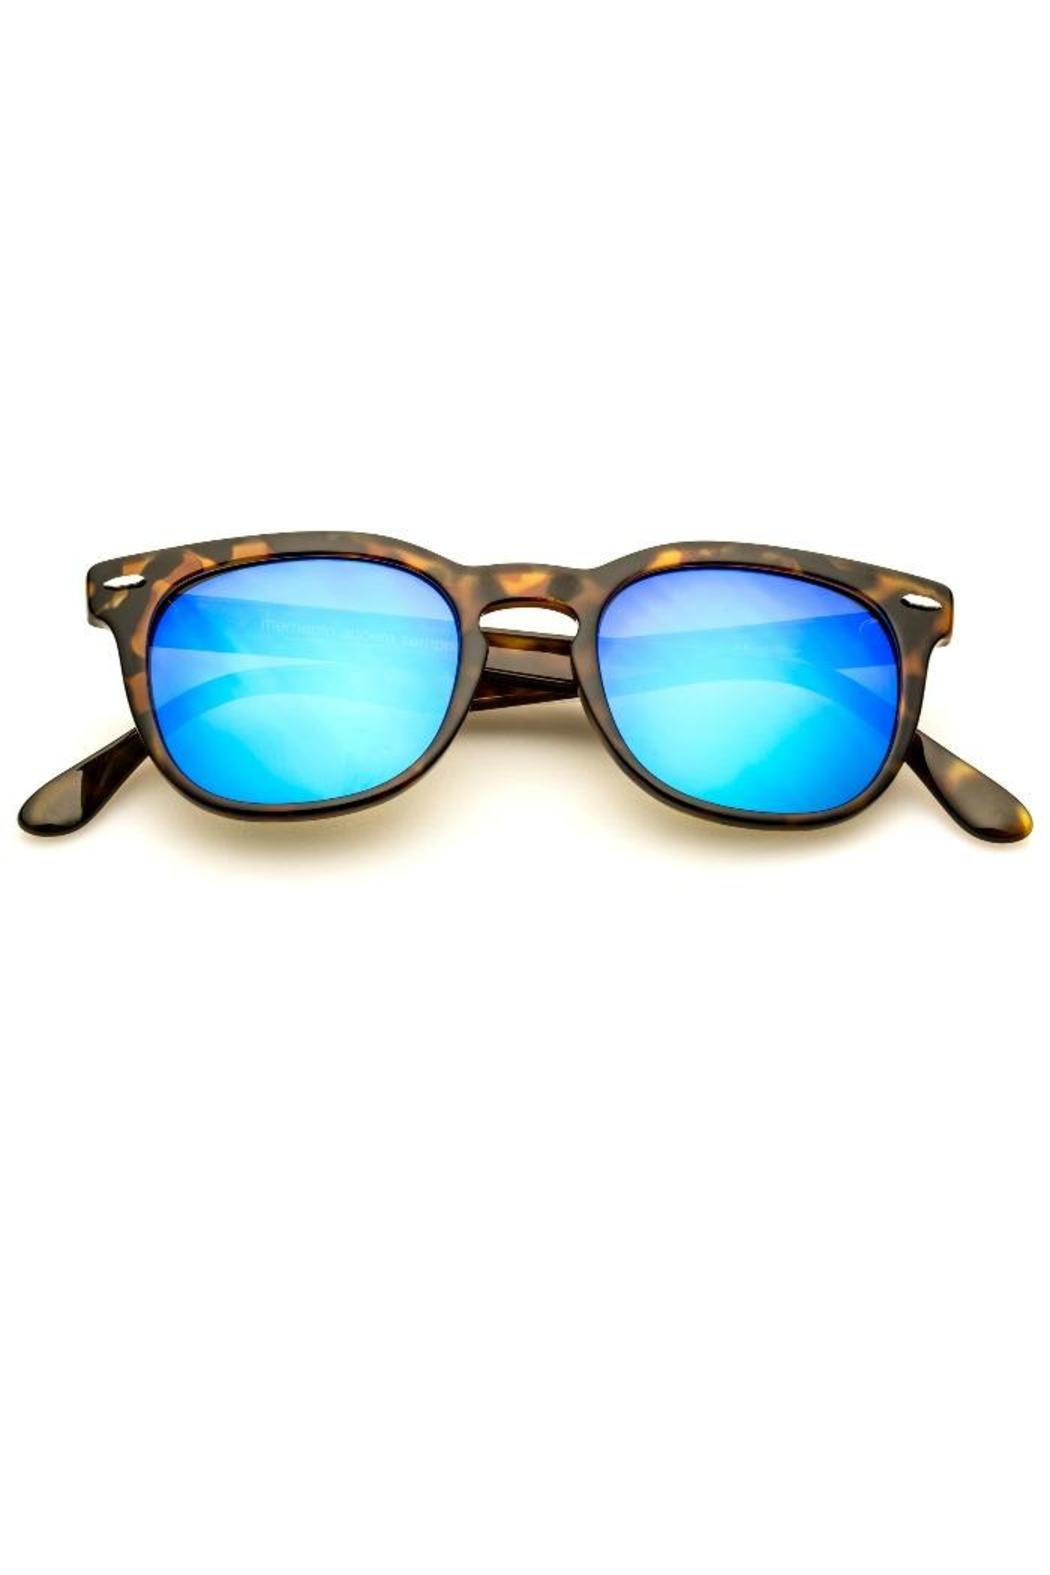 Glasses Frames Upper East Side : Spektre Memento Audere Sunglasses from Upper East Side by ...